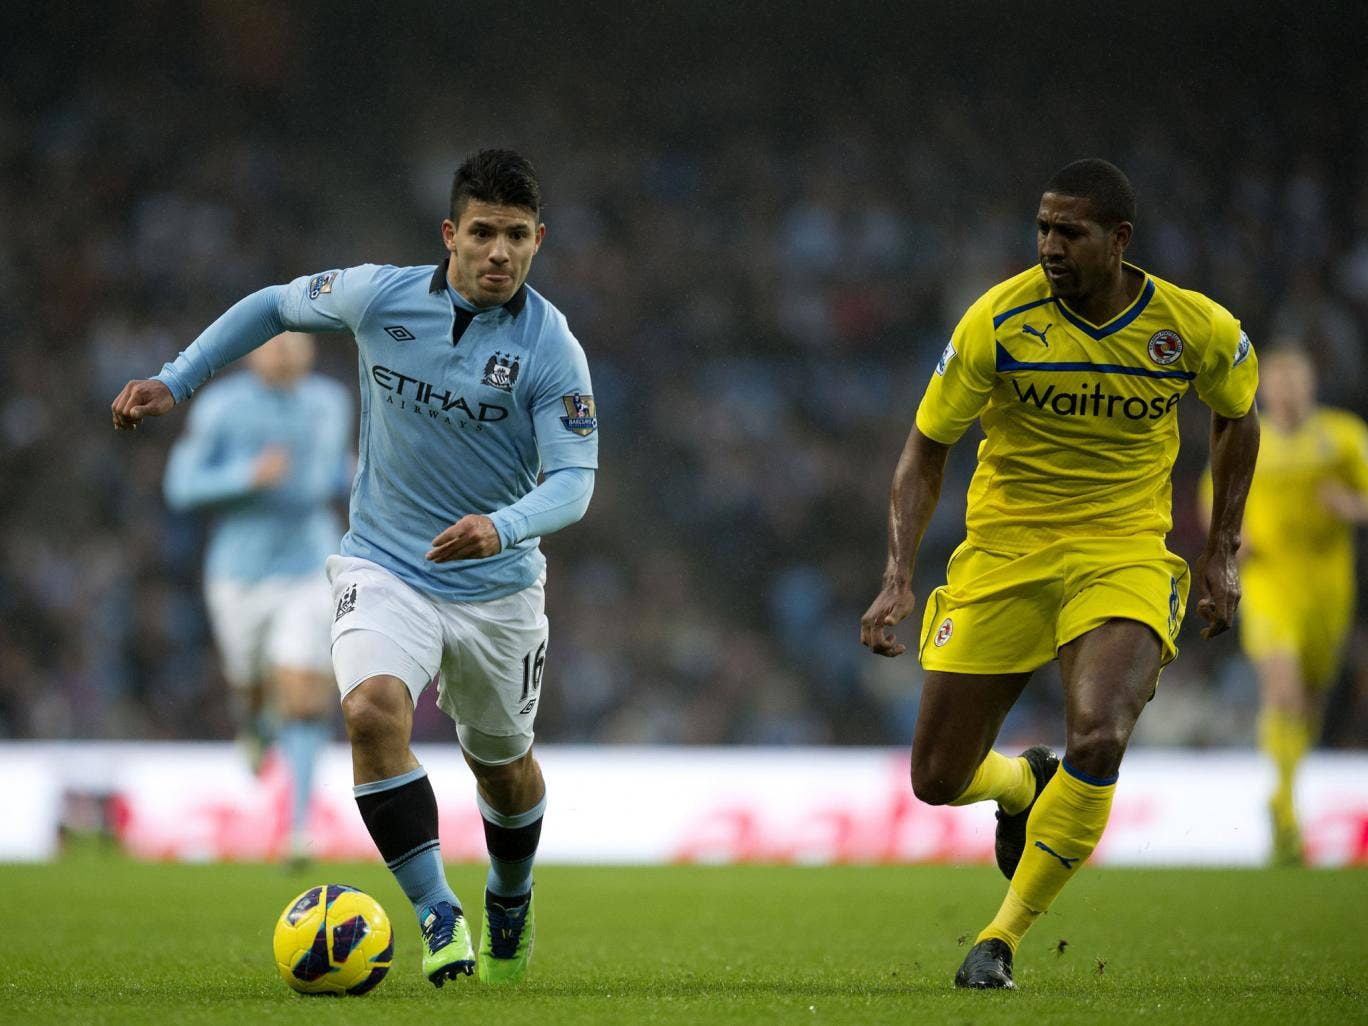 Manchester City's Argentinian striker Sergio Aguero (C) runs with the ball against Reading